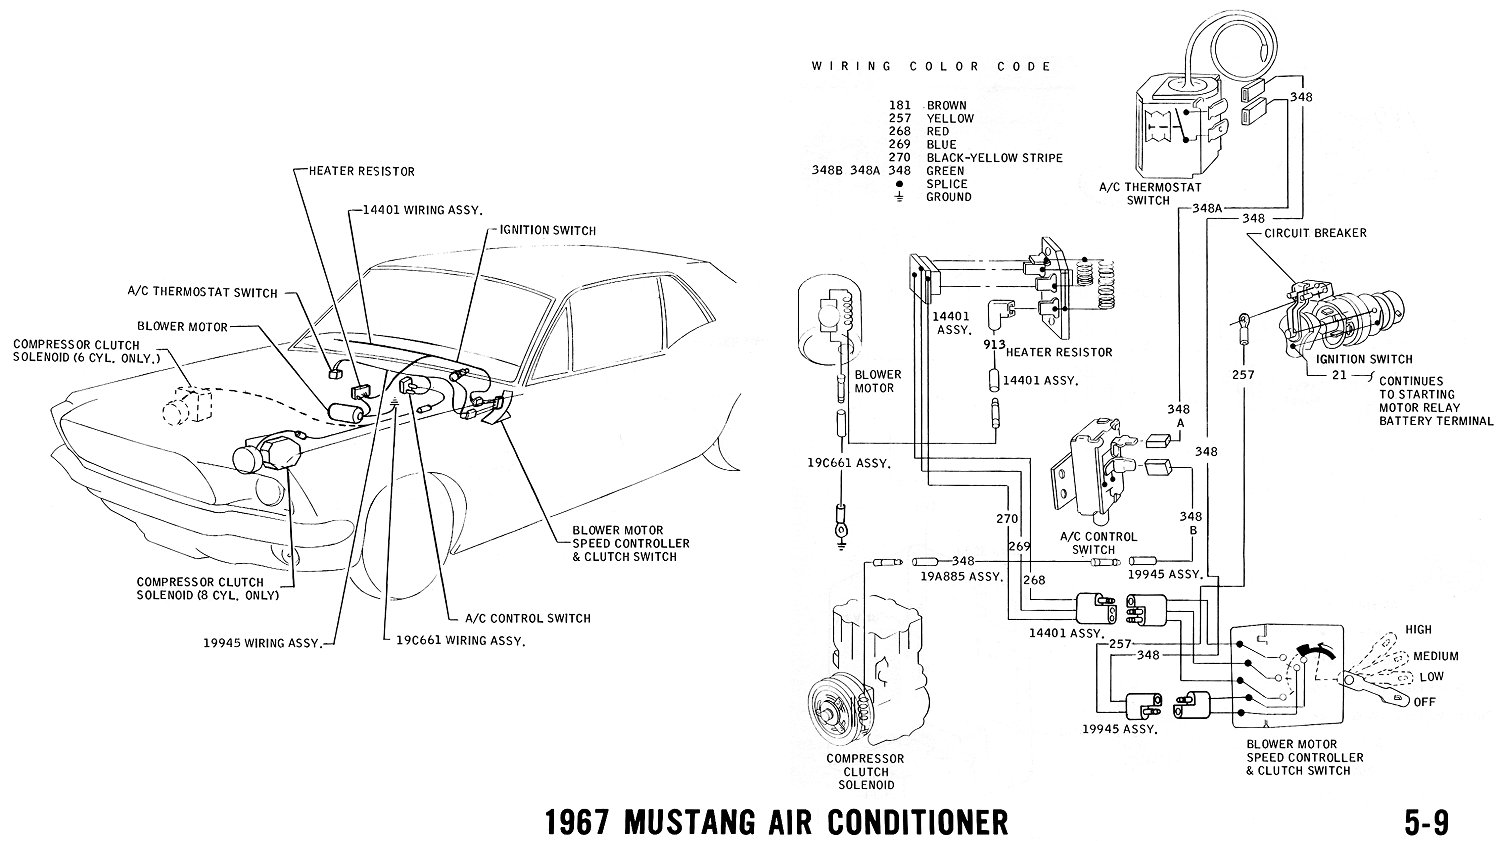 1967 mustang wiring and vacuum diagrams average joe restoration 1967 mustang air conditioner pictorial and schematic